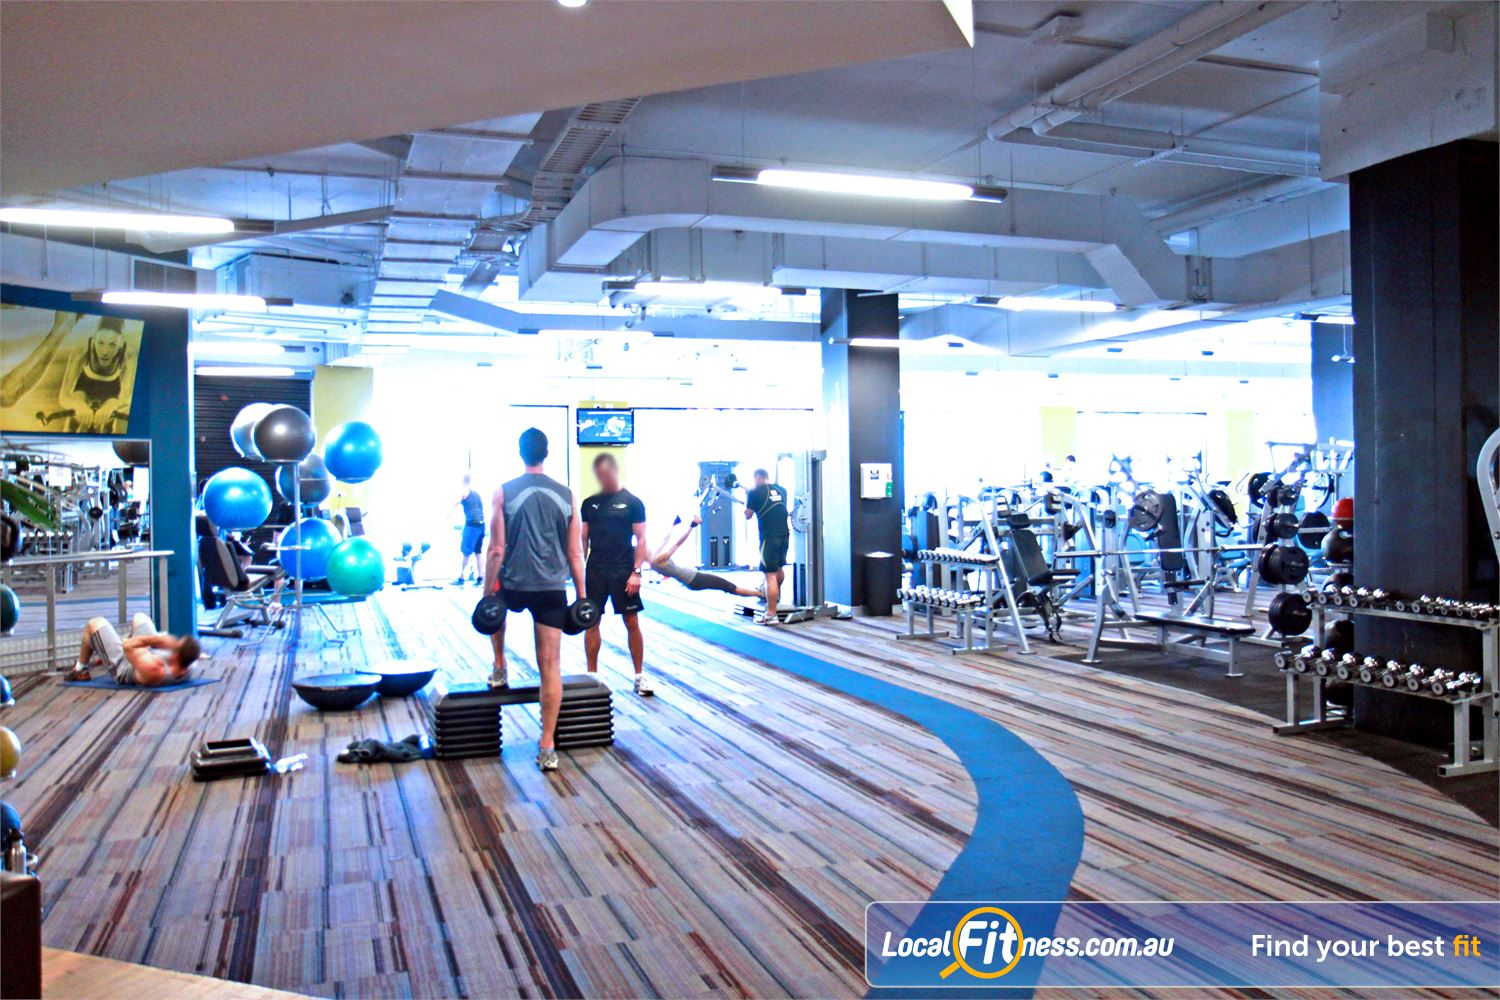 Goodlife Health Clubs Subiaco Goodlife Subiaco gym provides a relaxing free-weights and strength training environment.